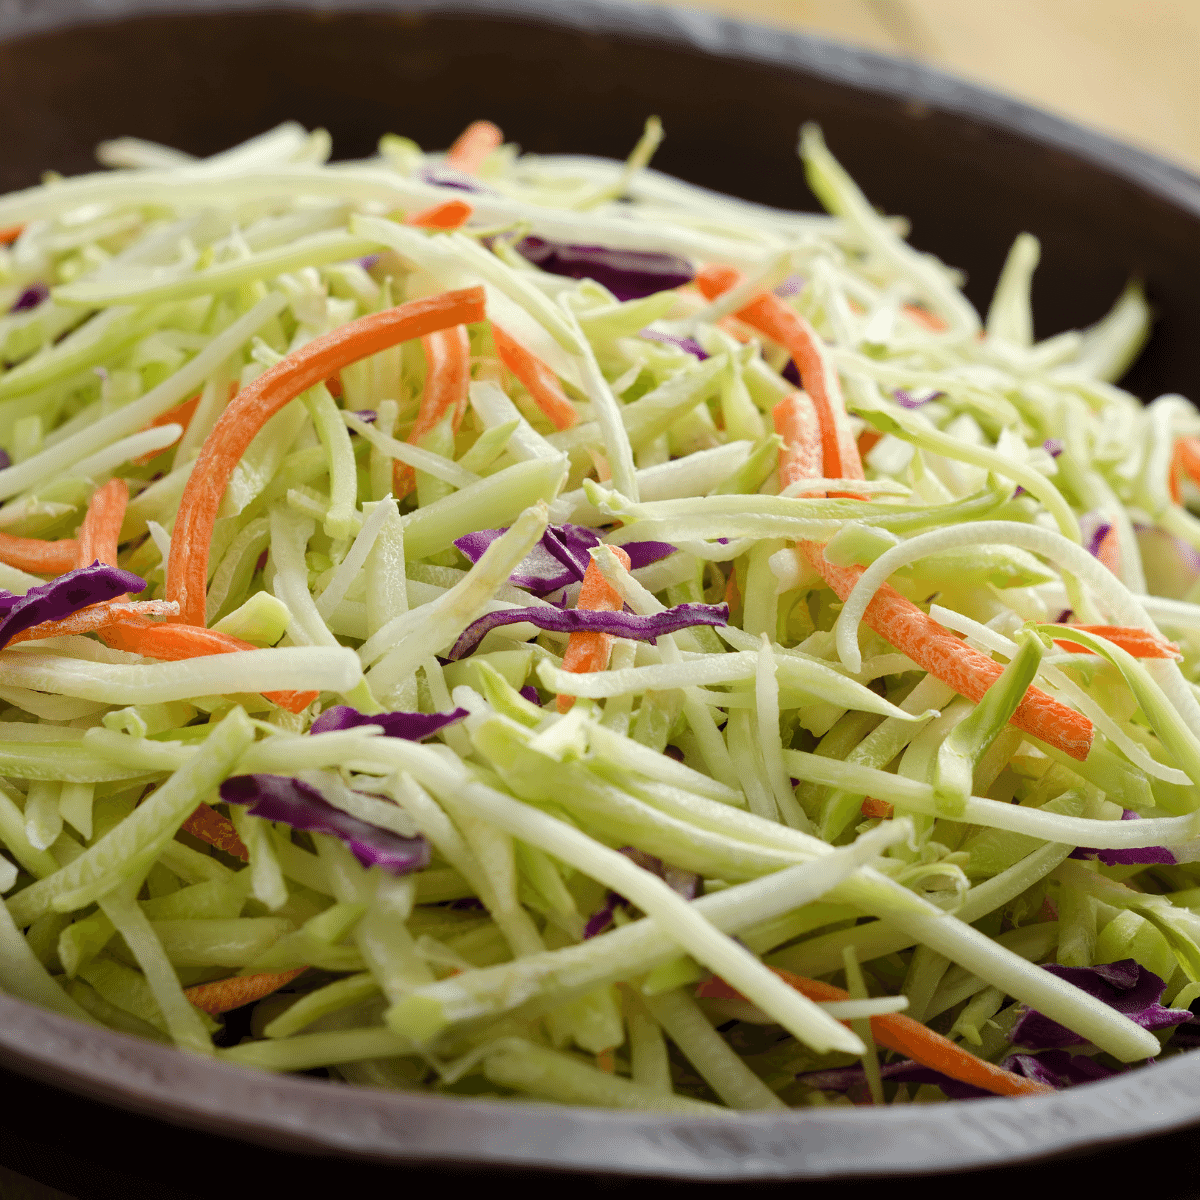 shredded cabbage and carrots in a bowl